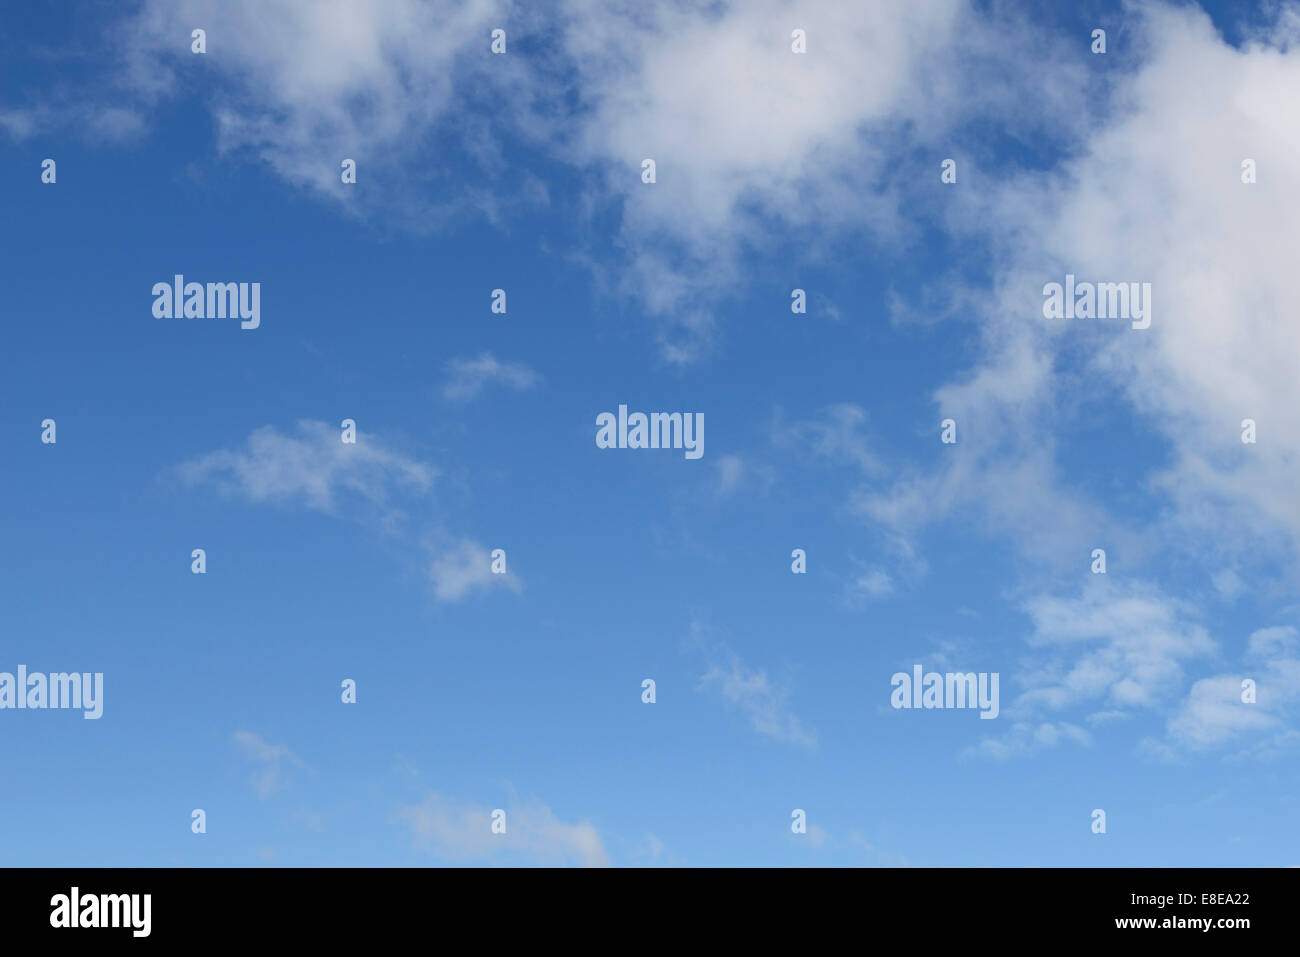 Blue sky with light broken cloud cover - Stock Image